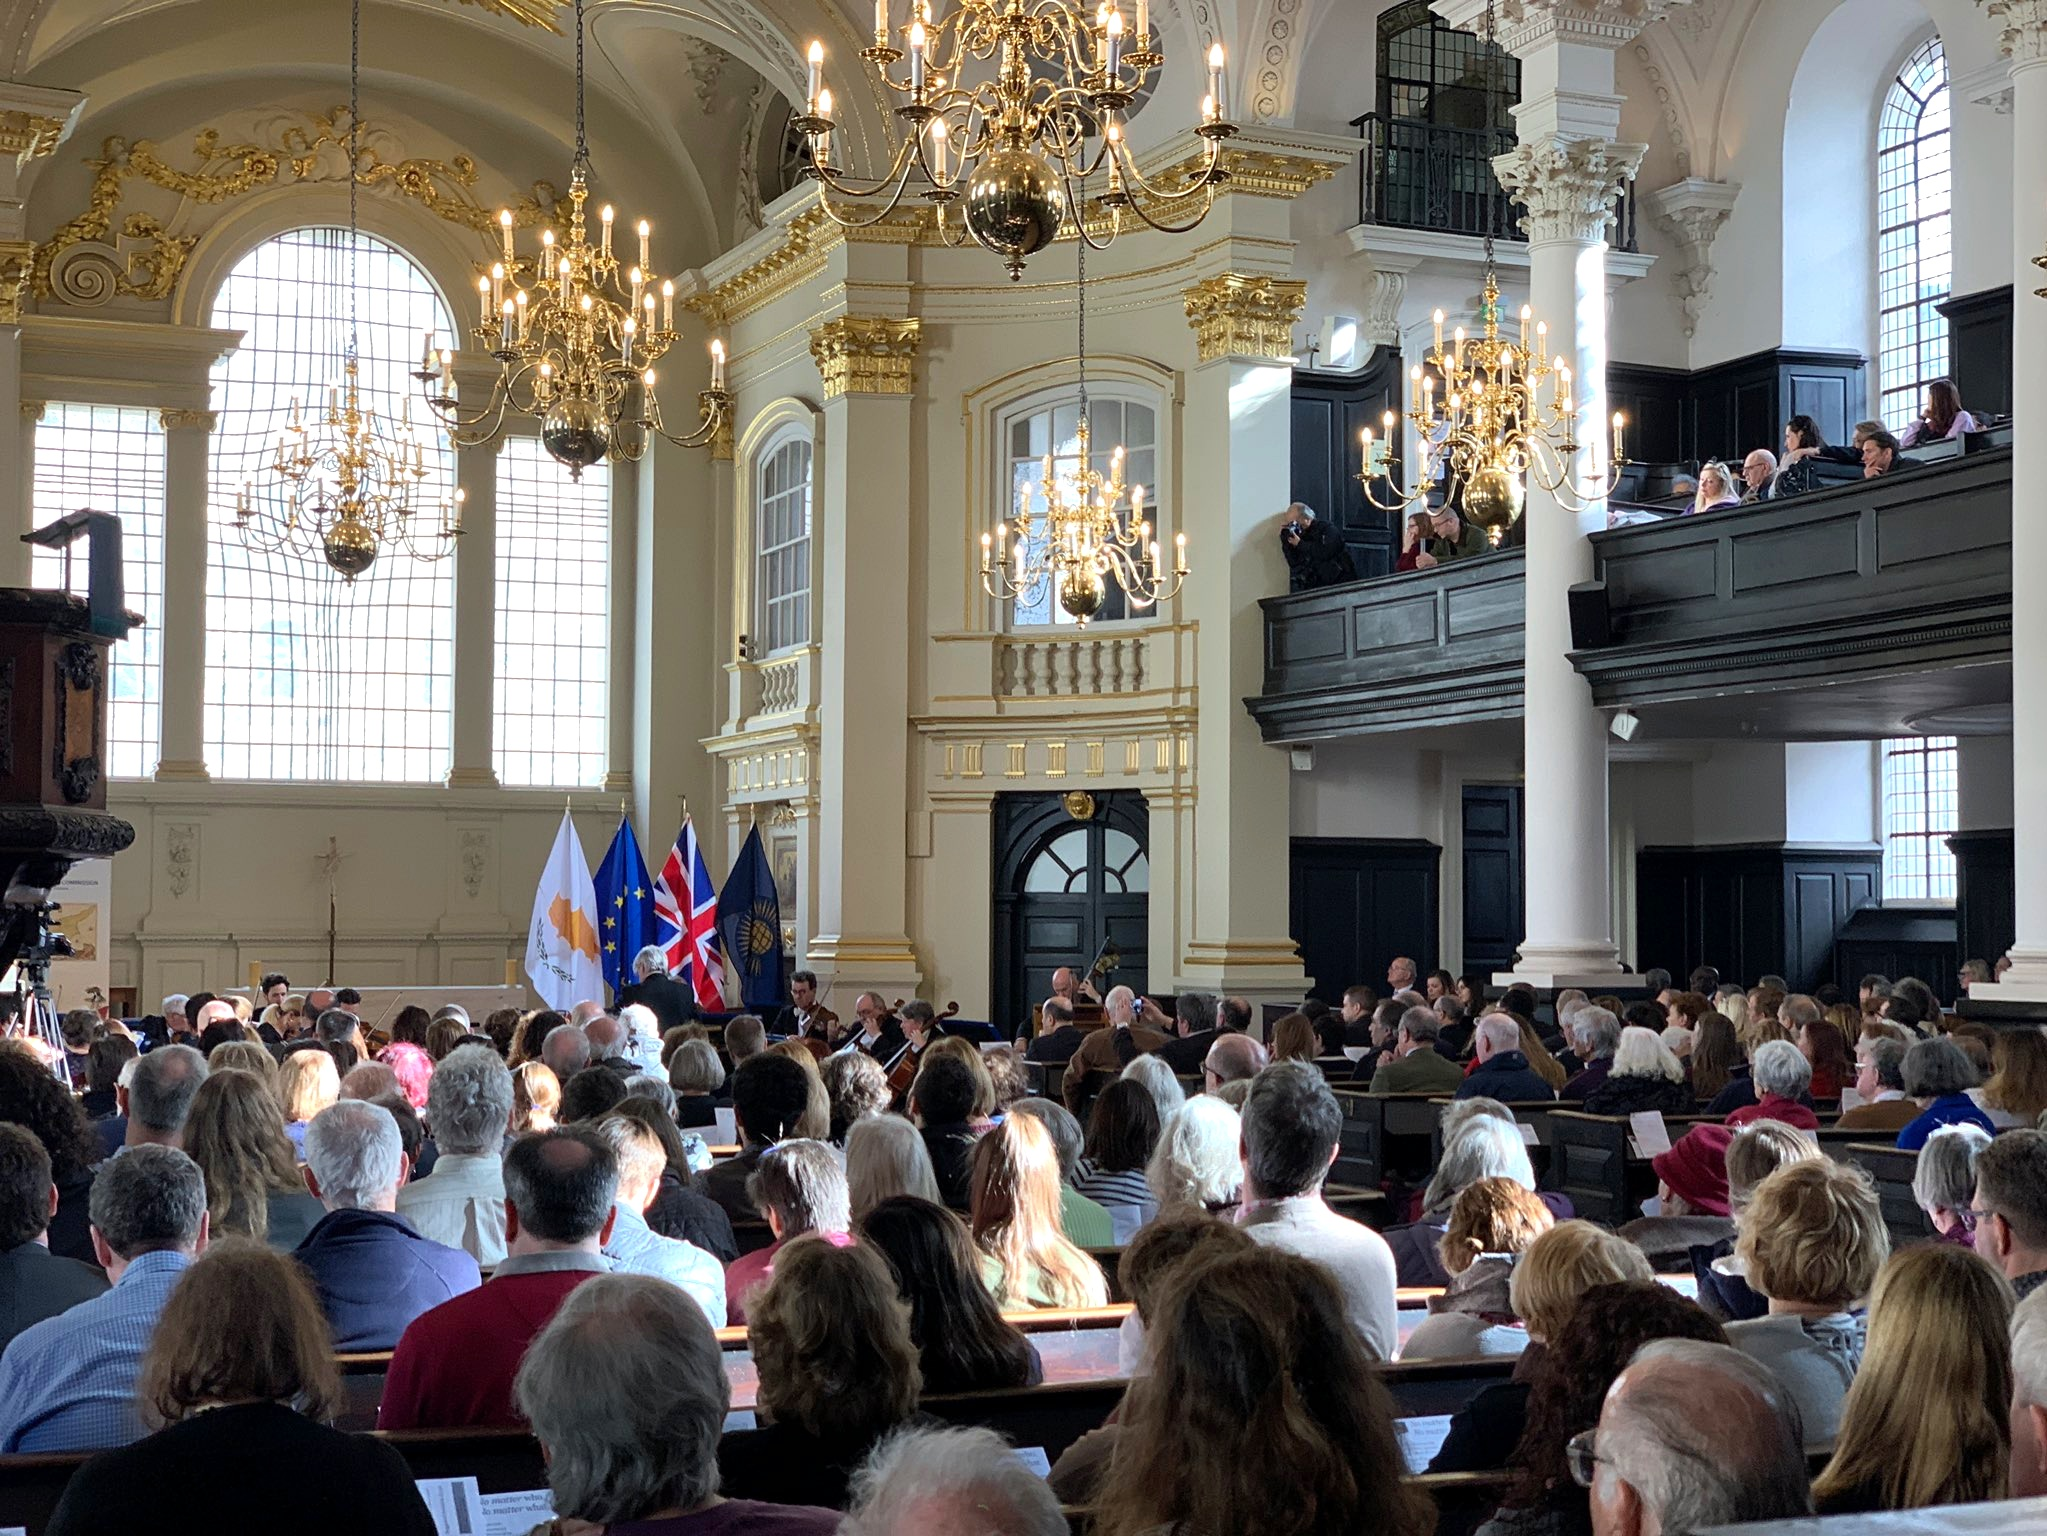 Oxford Philharmonic Orchestra, St Martin-in-the-Fields, 19 Feb 2019 - Katerina is delighted to be performing with the Oxford Philharmonic Orchestra and conductor Marios Papadopoulos during the lunchtime concert representing the High Commission of Cyprus at St Martin-in-the-Fields in London.